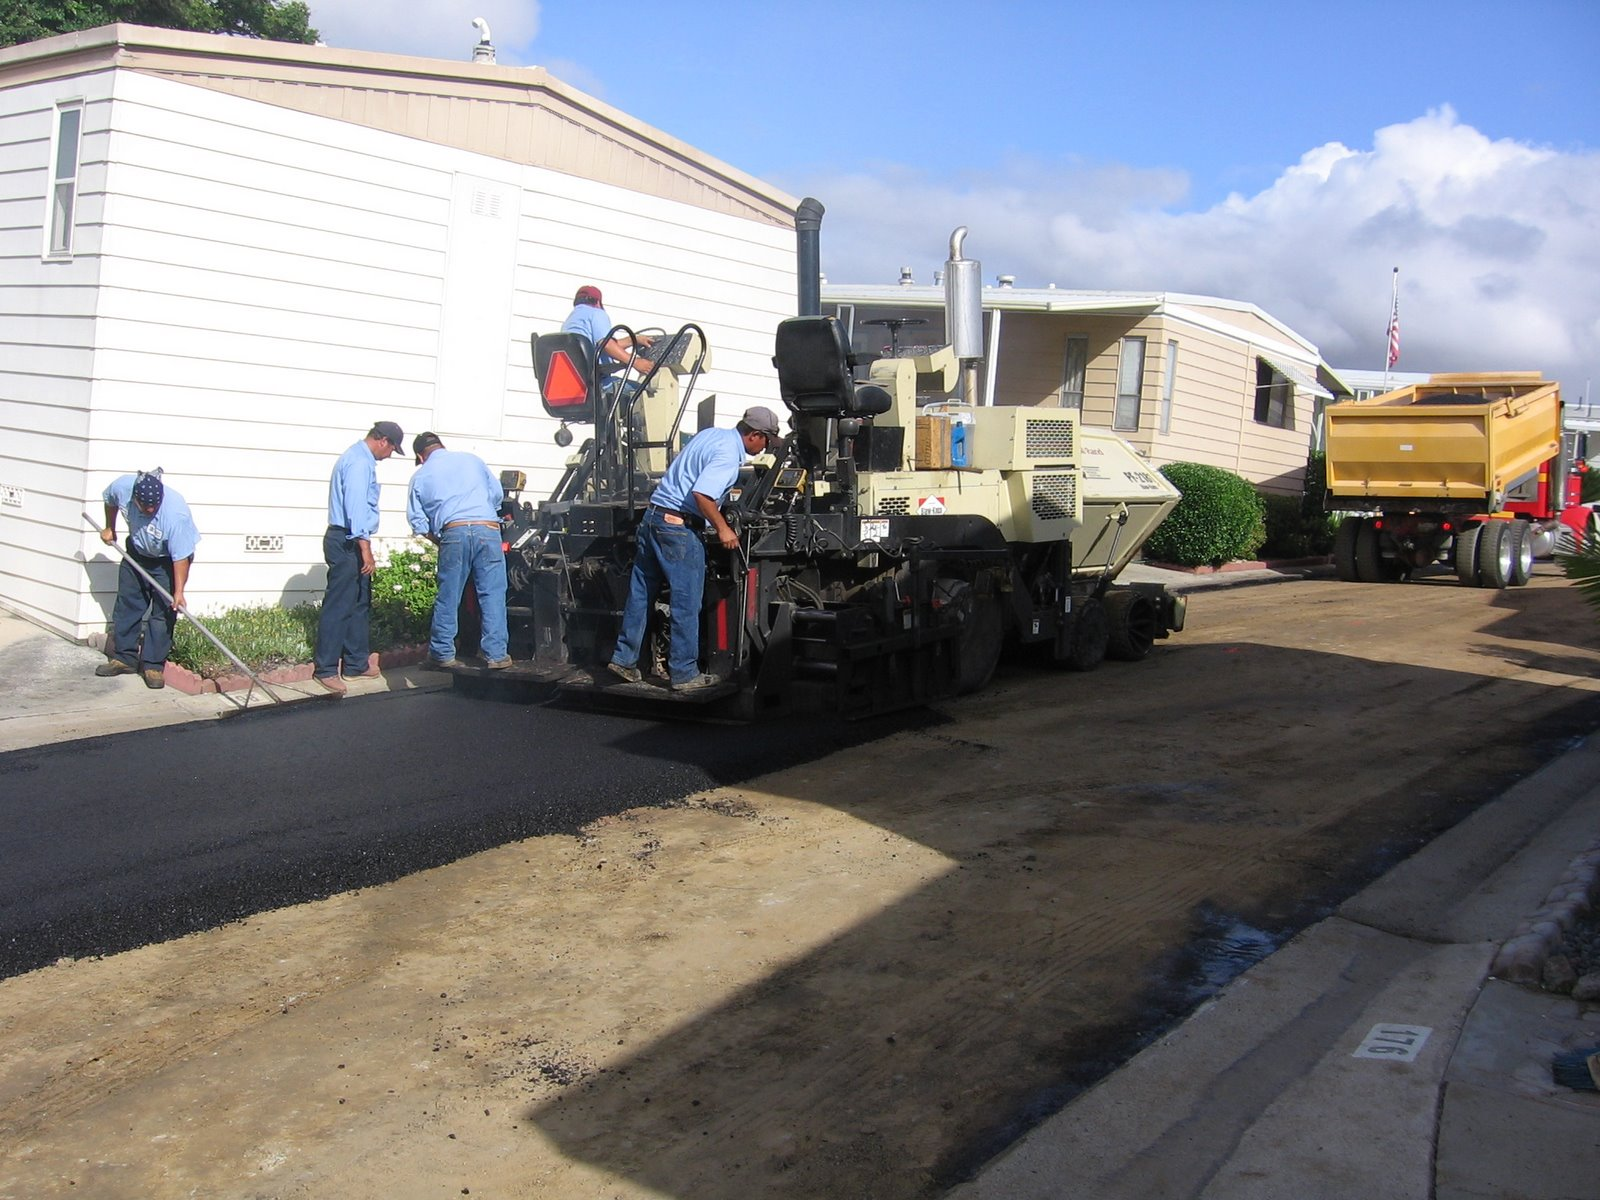 International Paving Services, Inc Asphalt Contractor San. Cafeteria Table And Chairs Taget Store Hours. Joomla Hosting Templates Prepaid Burial Plans. Call Center Outsourcing Networx Alarm System. Virtual Business Addresses Auburn Bank Online. Comp Rehab Winston Salem Nc Send Via Email. International Education Masters Programs. Nursing School In San Antonio Texas. What Is The Address Of The White House